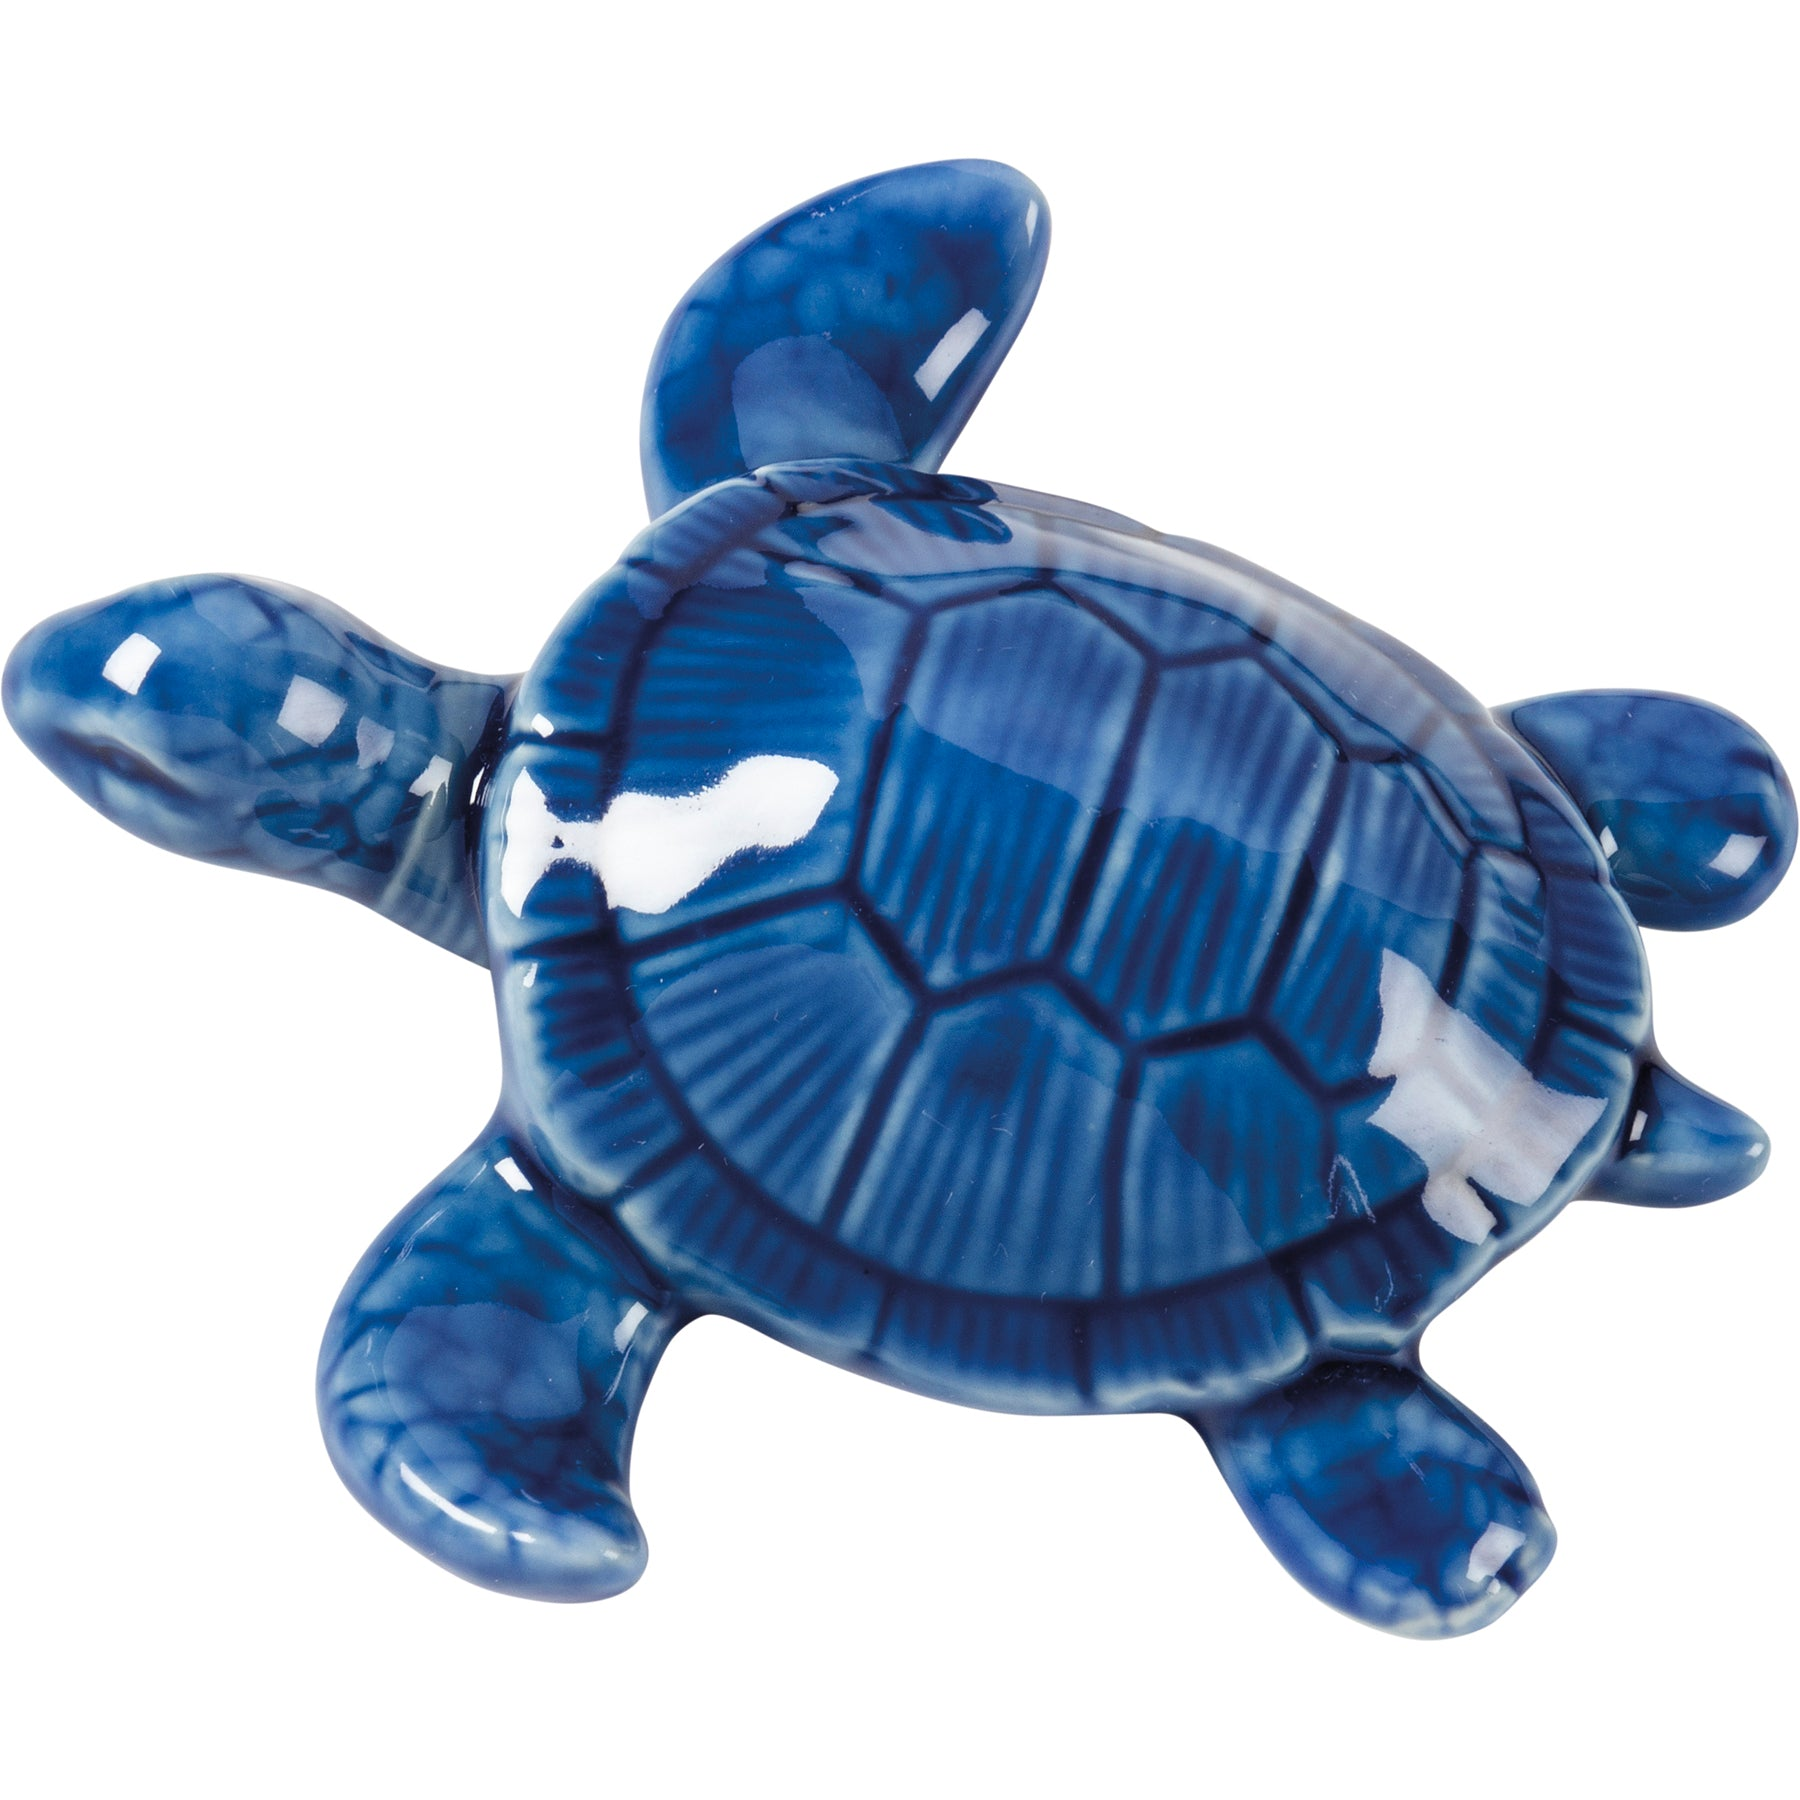 Figurine Small - Sea Turtle